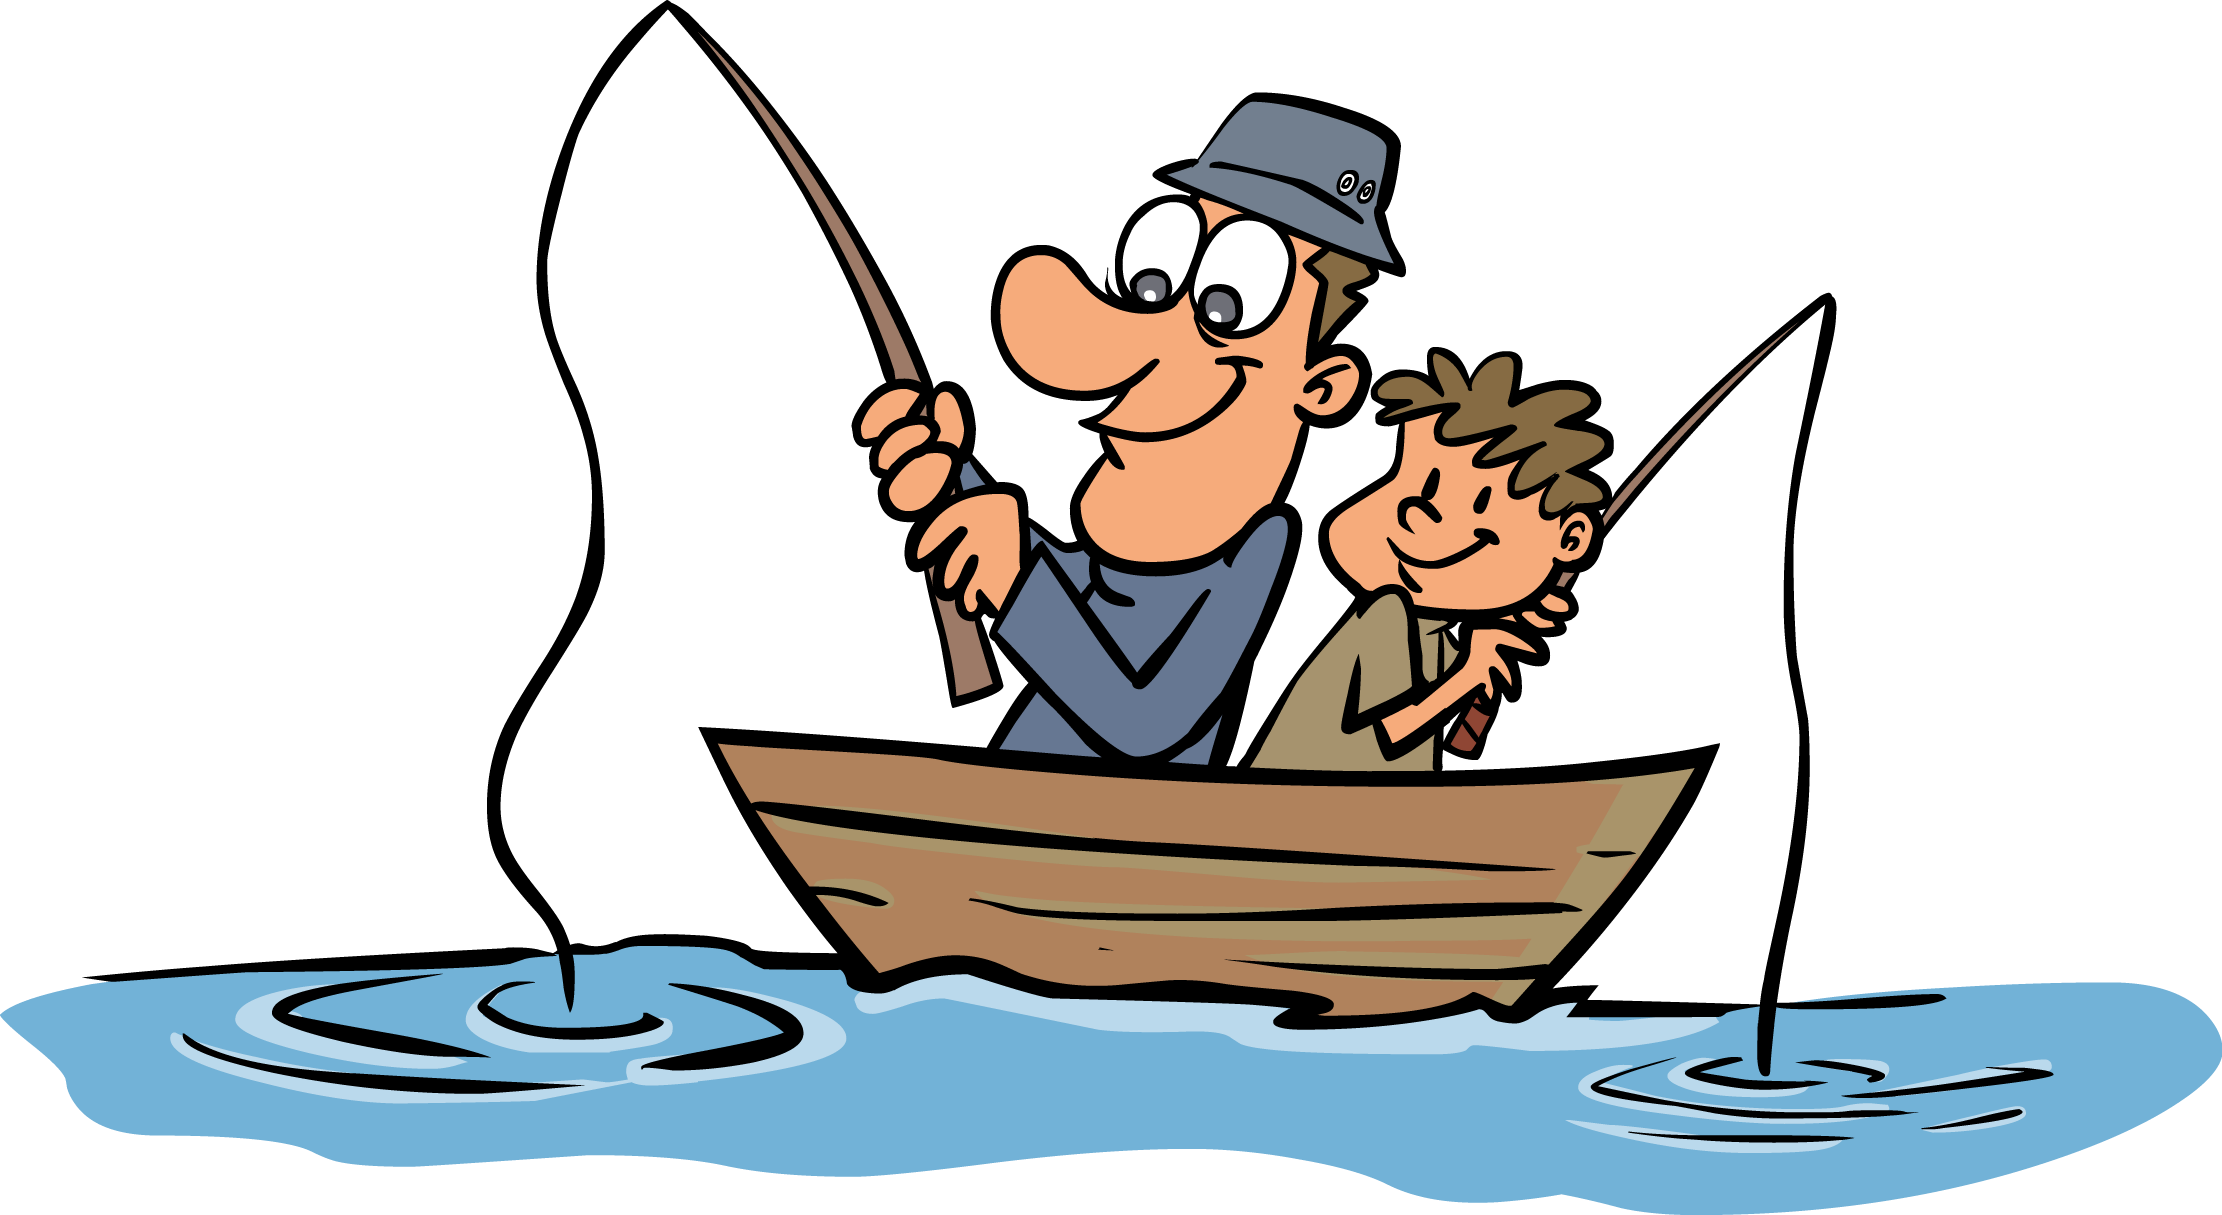 Fishing clipart caught fish.  collection of fisherman